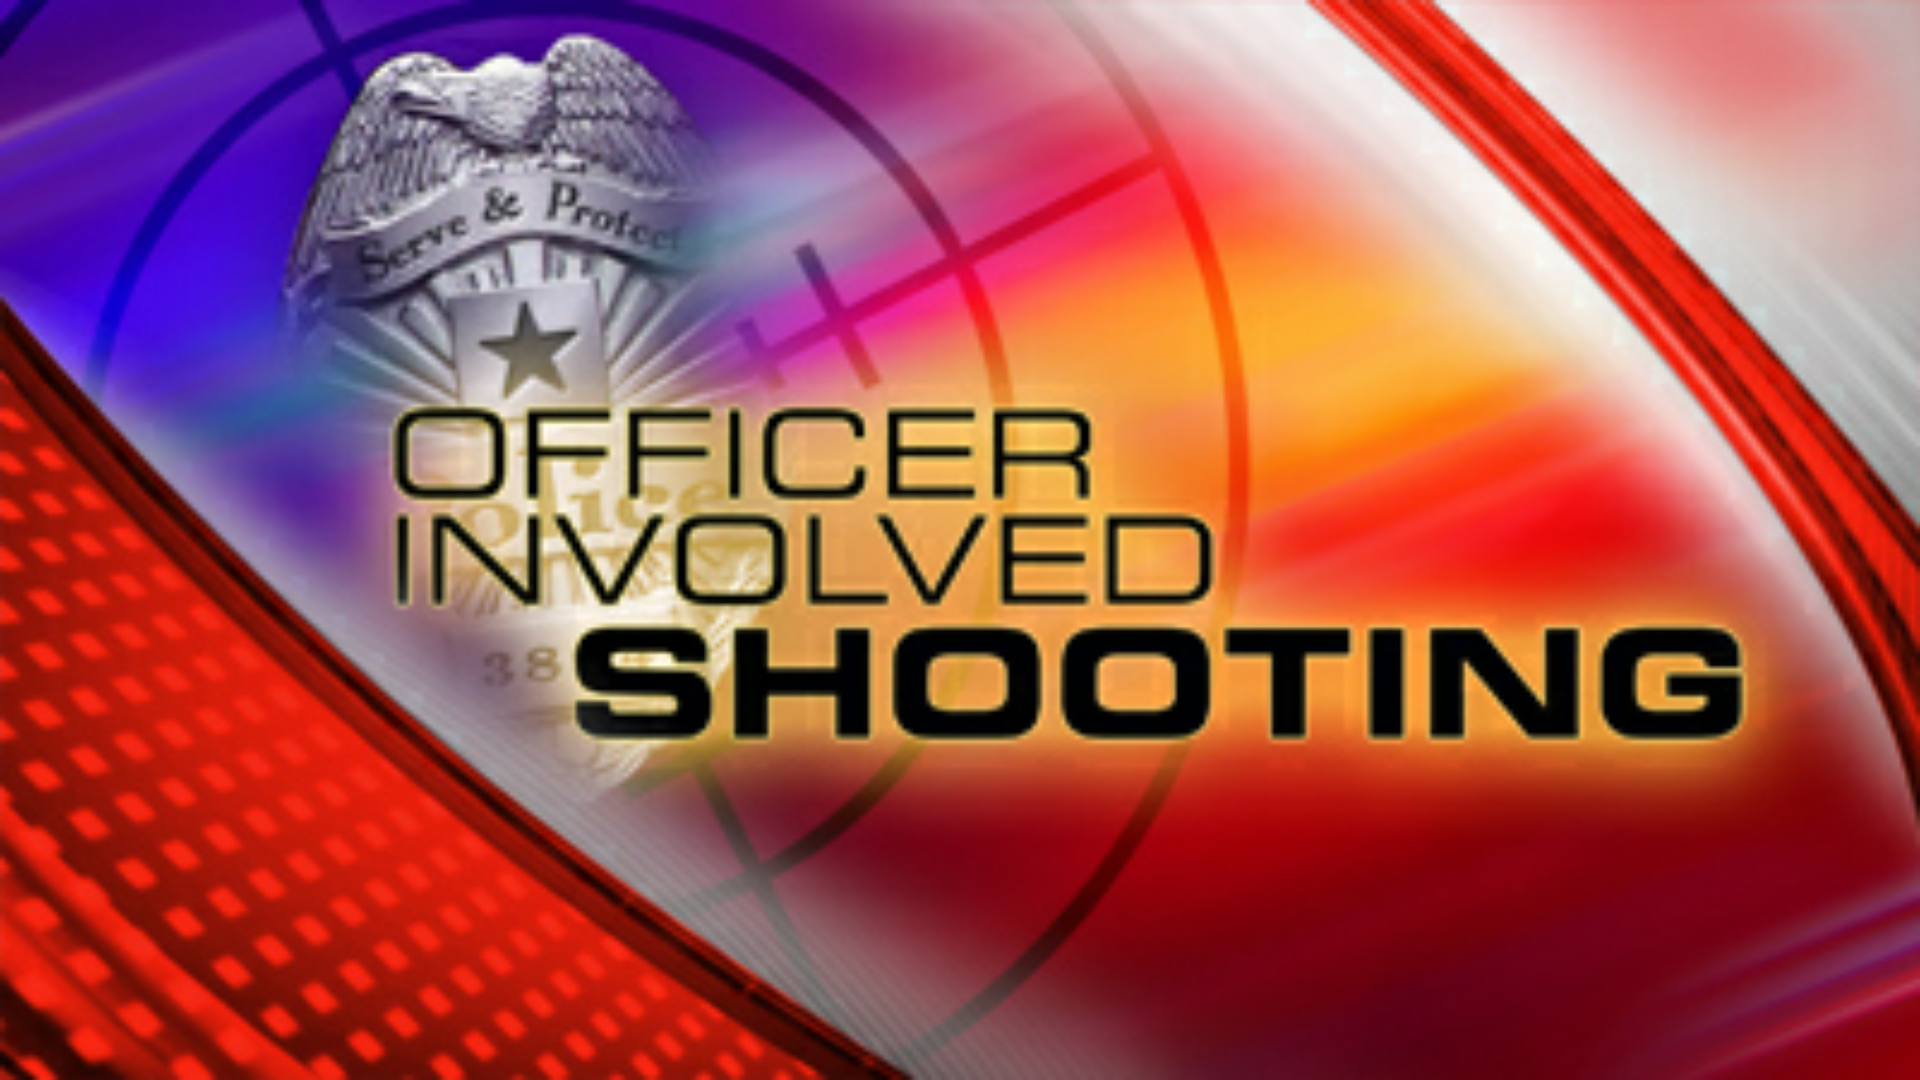 Man shot by police officer after Family Dollar robbery in Birmingham